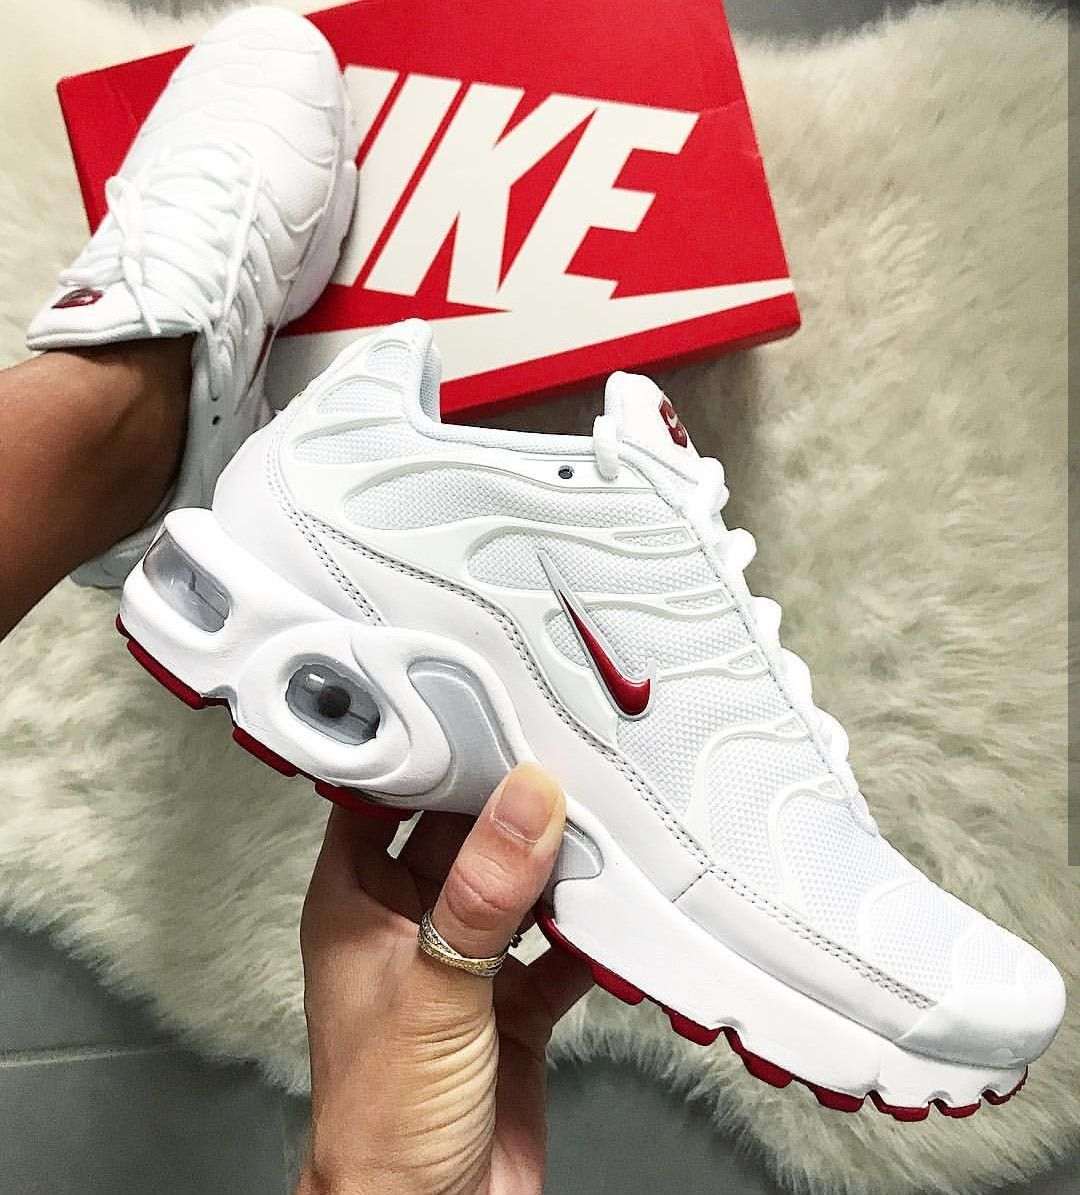 Nike Air Max Plus In Weiss Rot White Red Foto Fanamss Instagram Nike Air Max Plus Nike Air Max Nike Schuhe